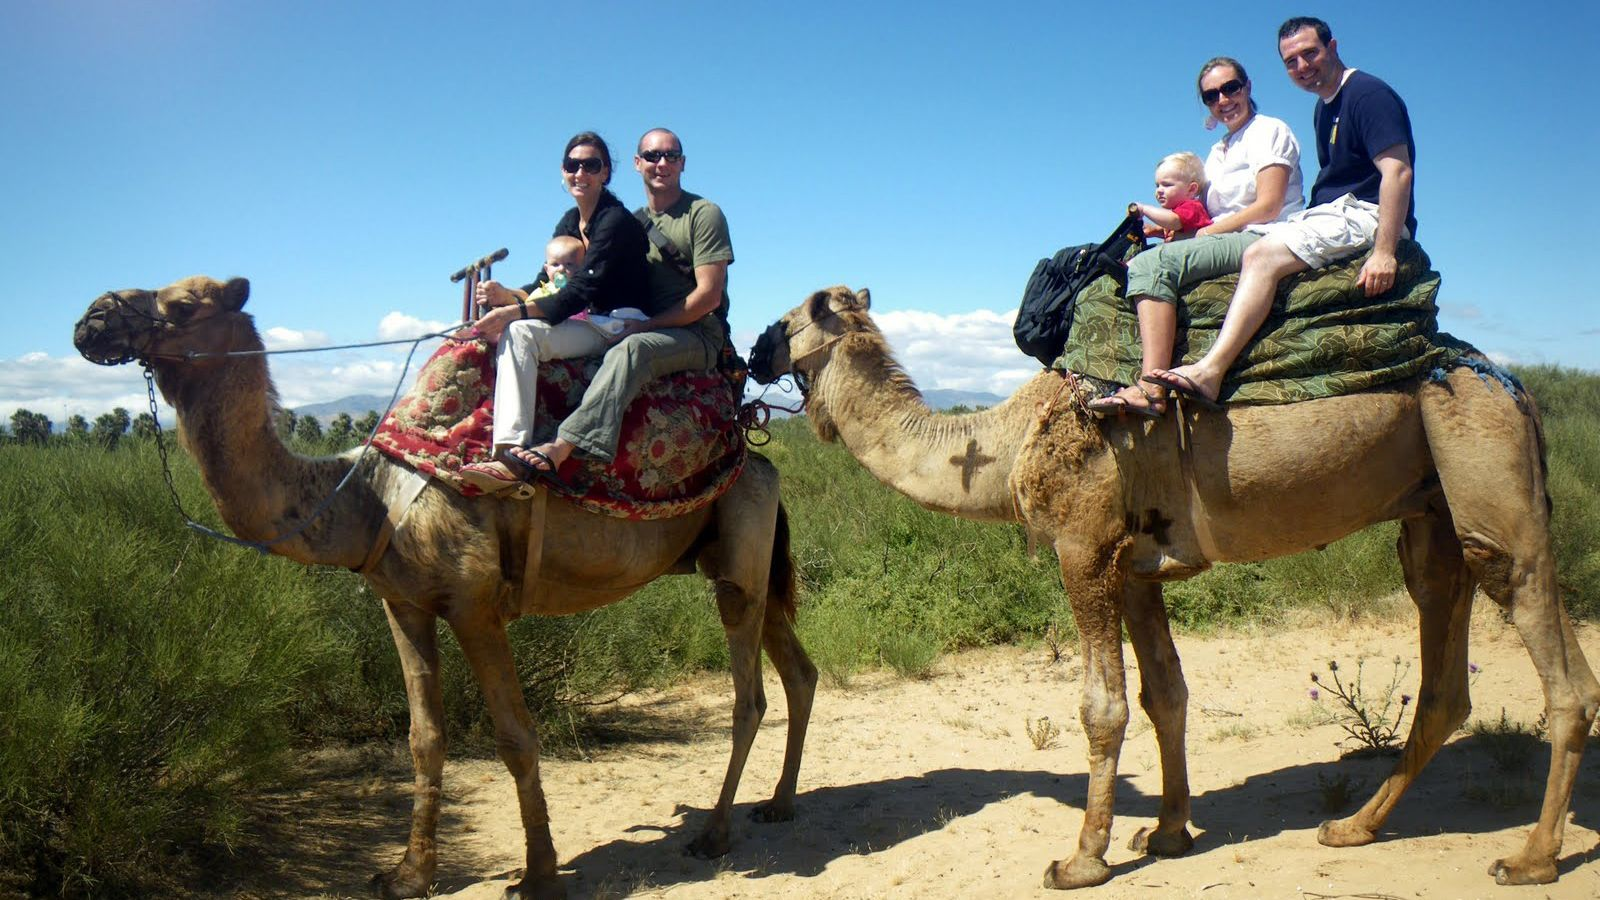 A couple of families riding camels in Agadir